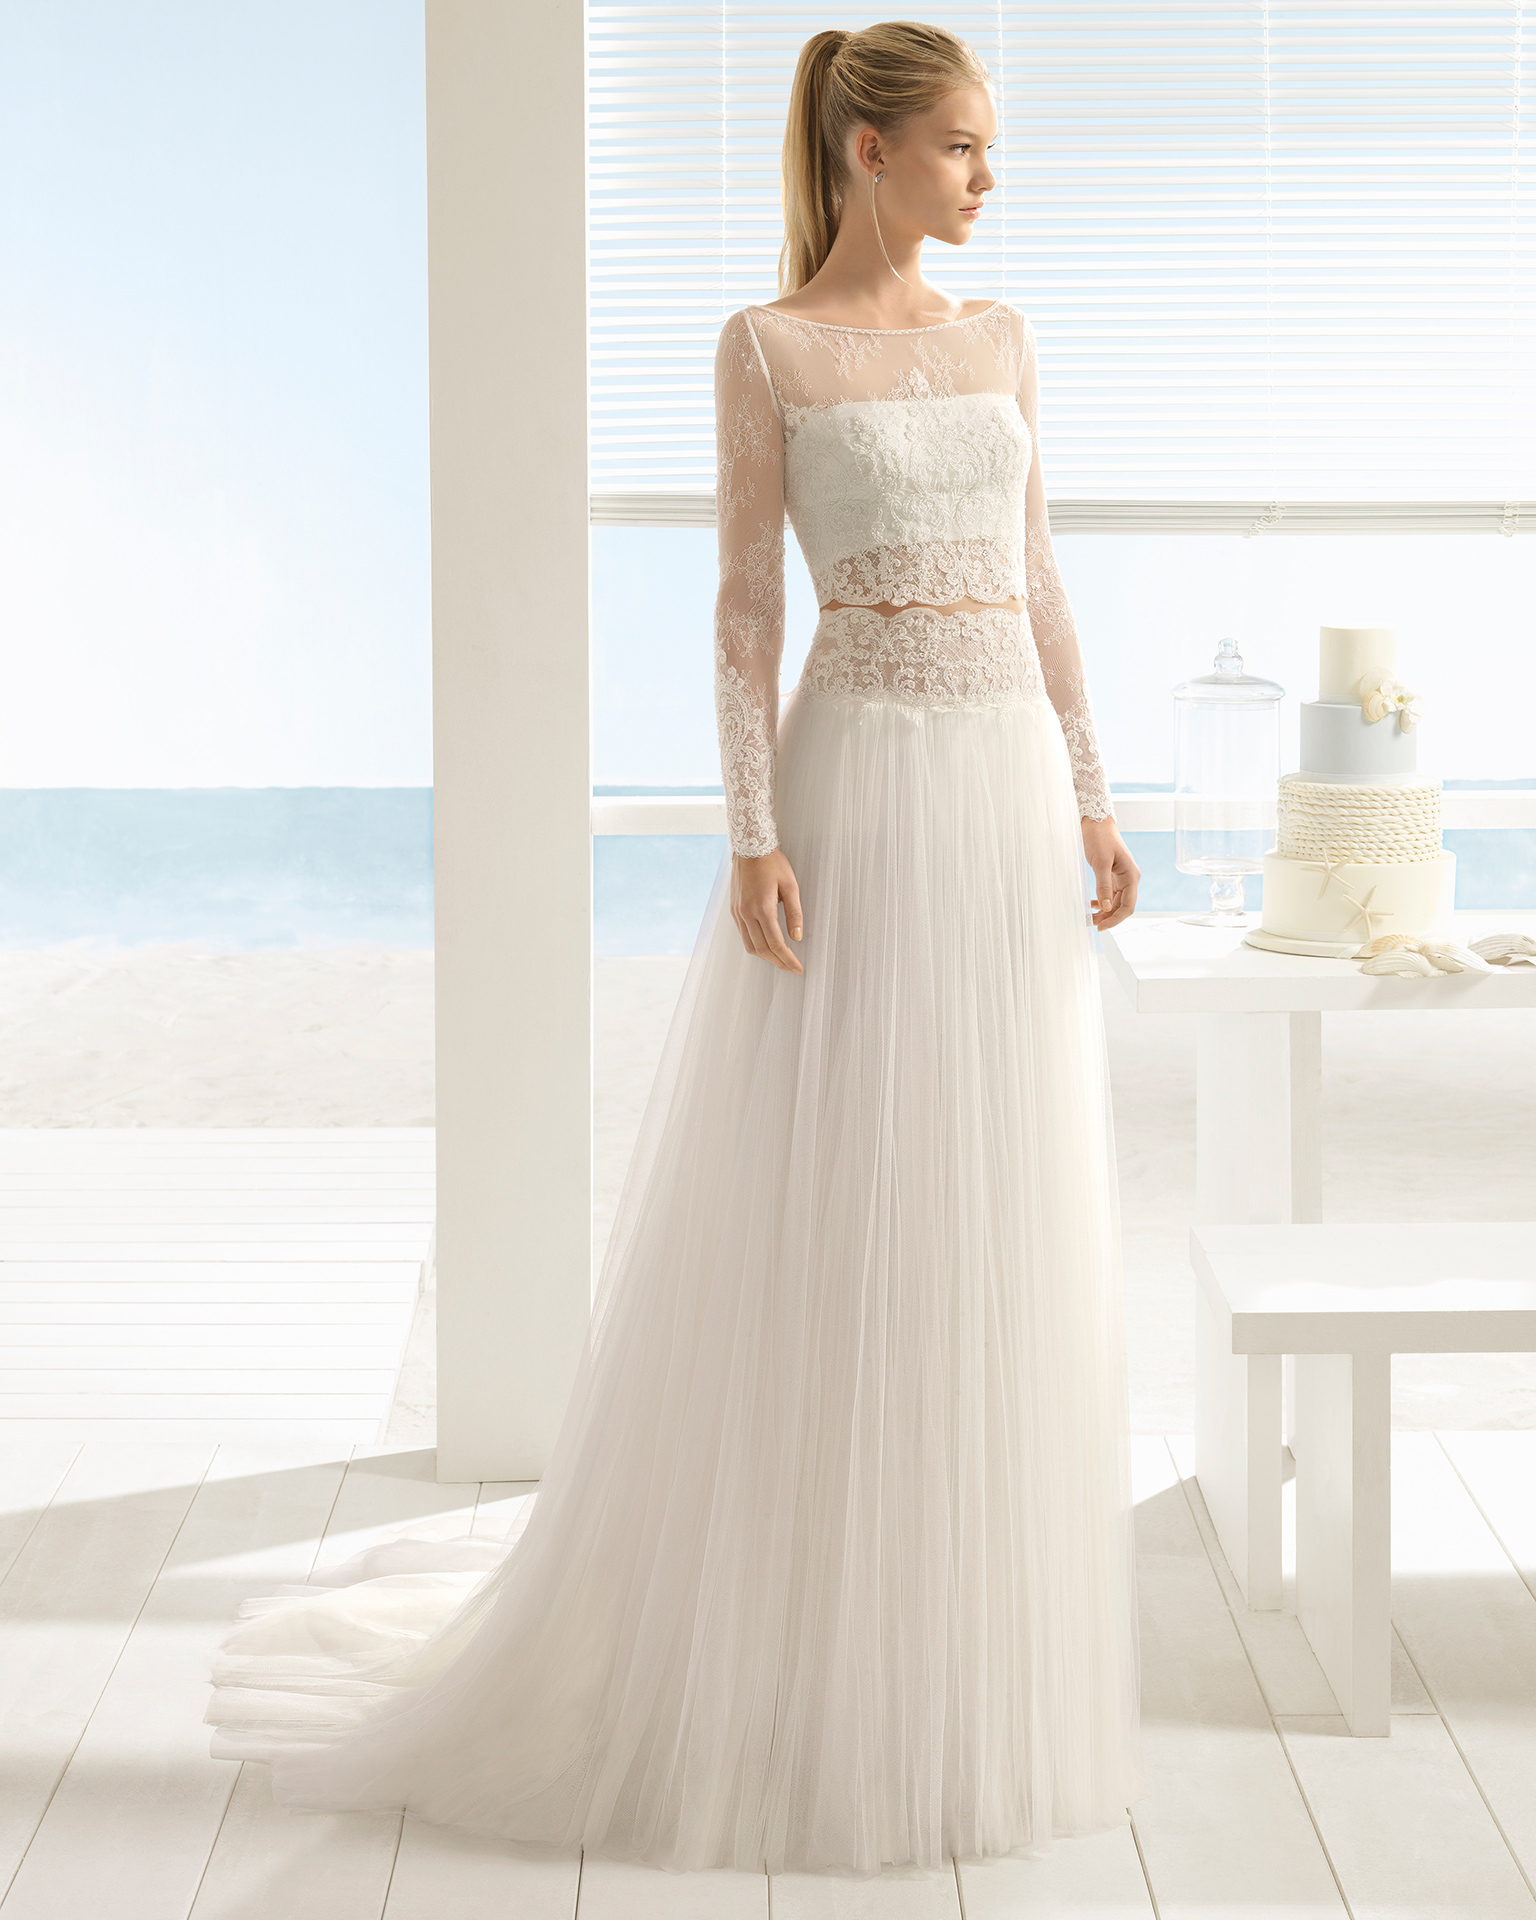 Boho-style beaded lace and soft tulle three-piece wedding dress with long sleeves and jacket.